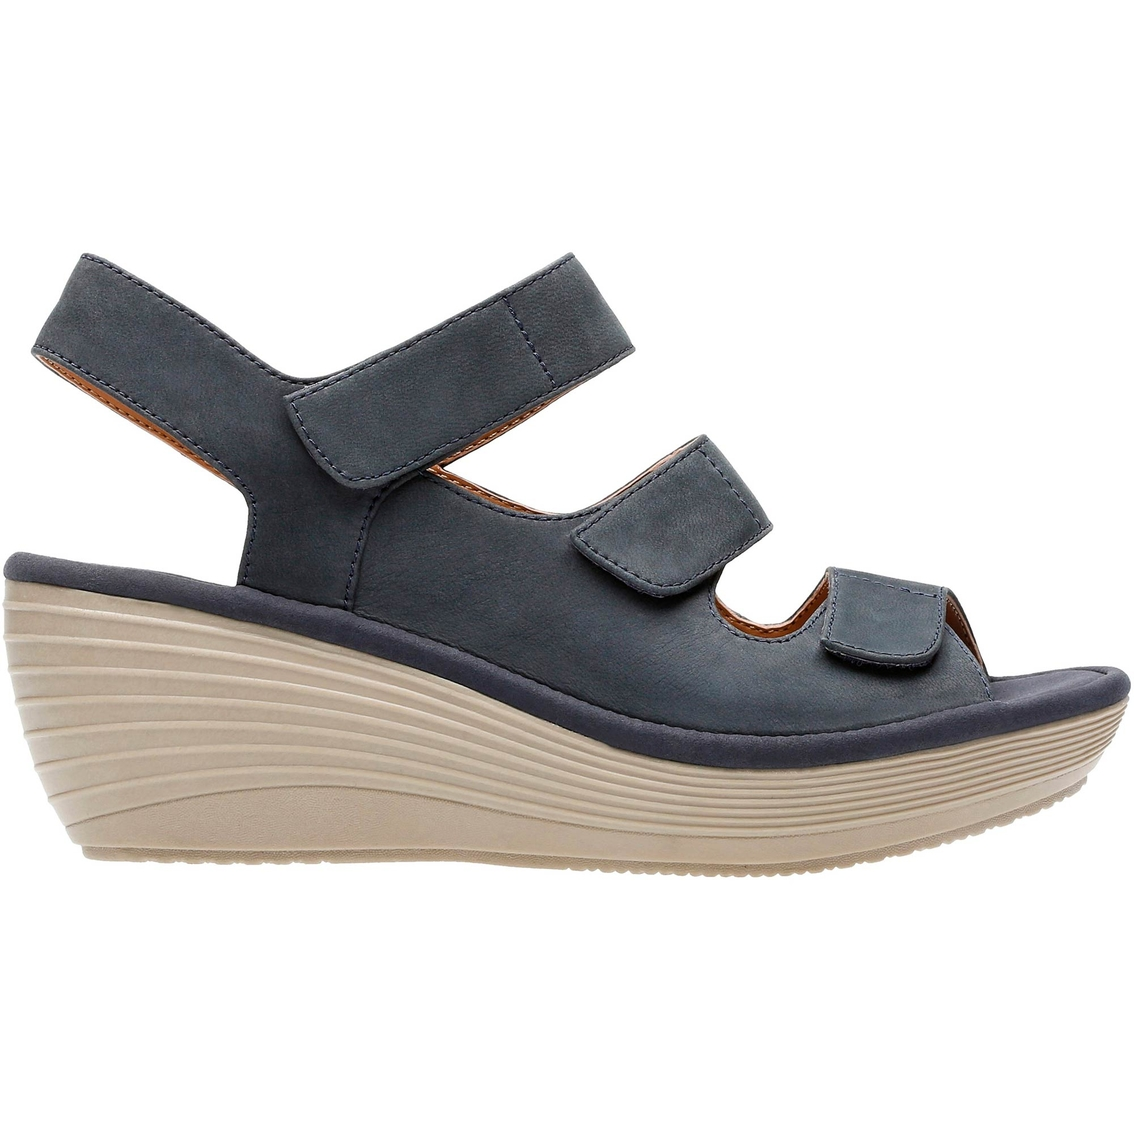 567fc7d0032b Clarks Reedly Juno Wedge Sandals